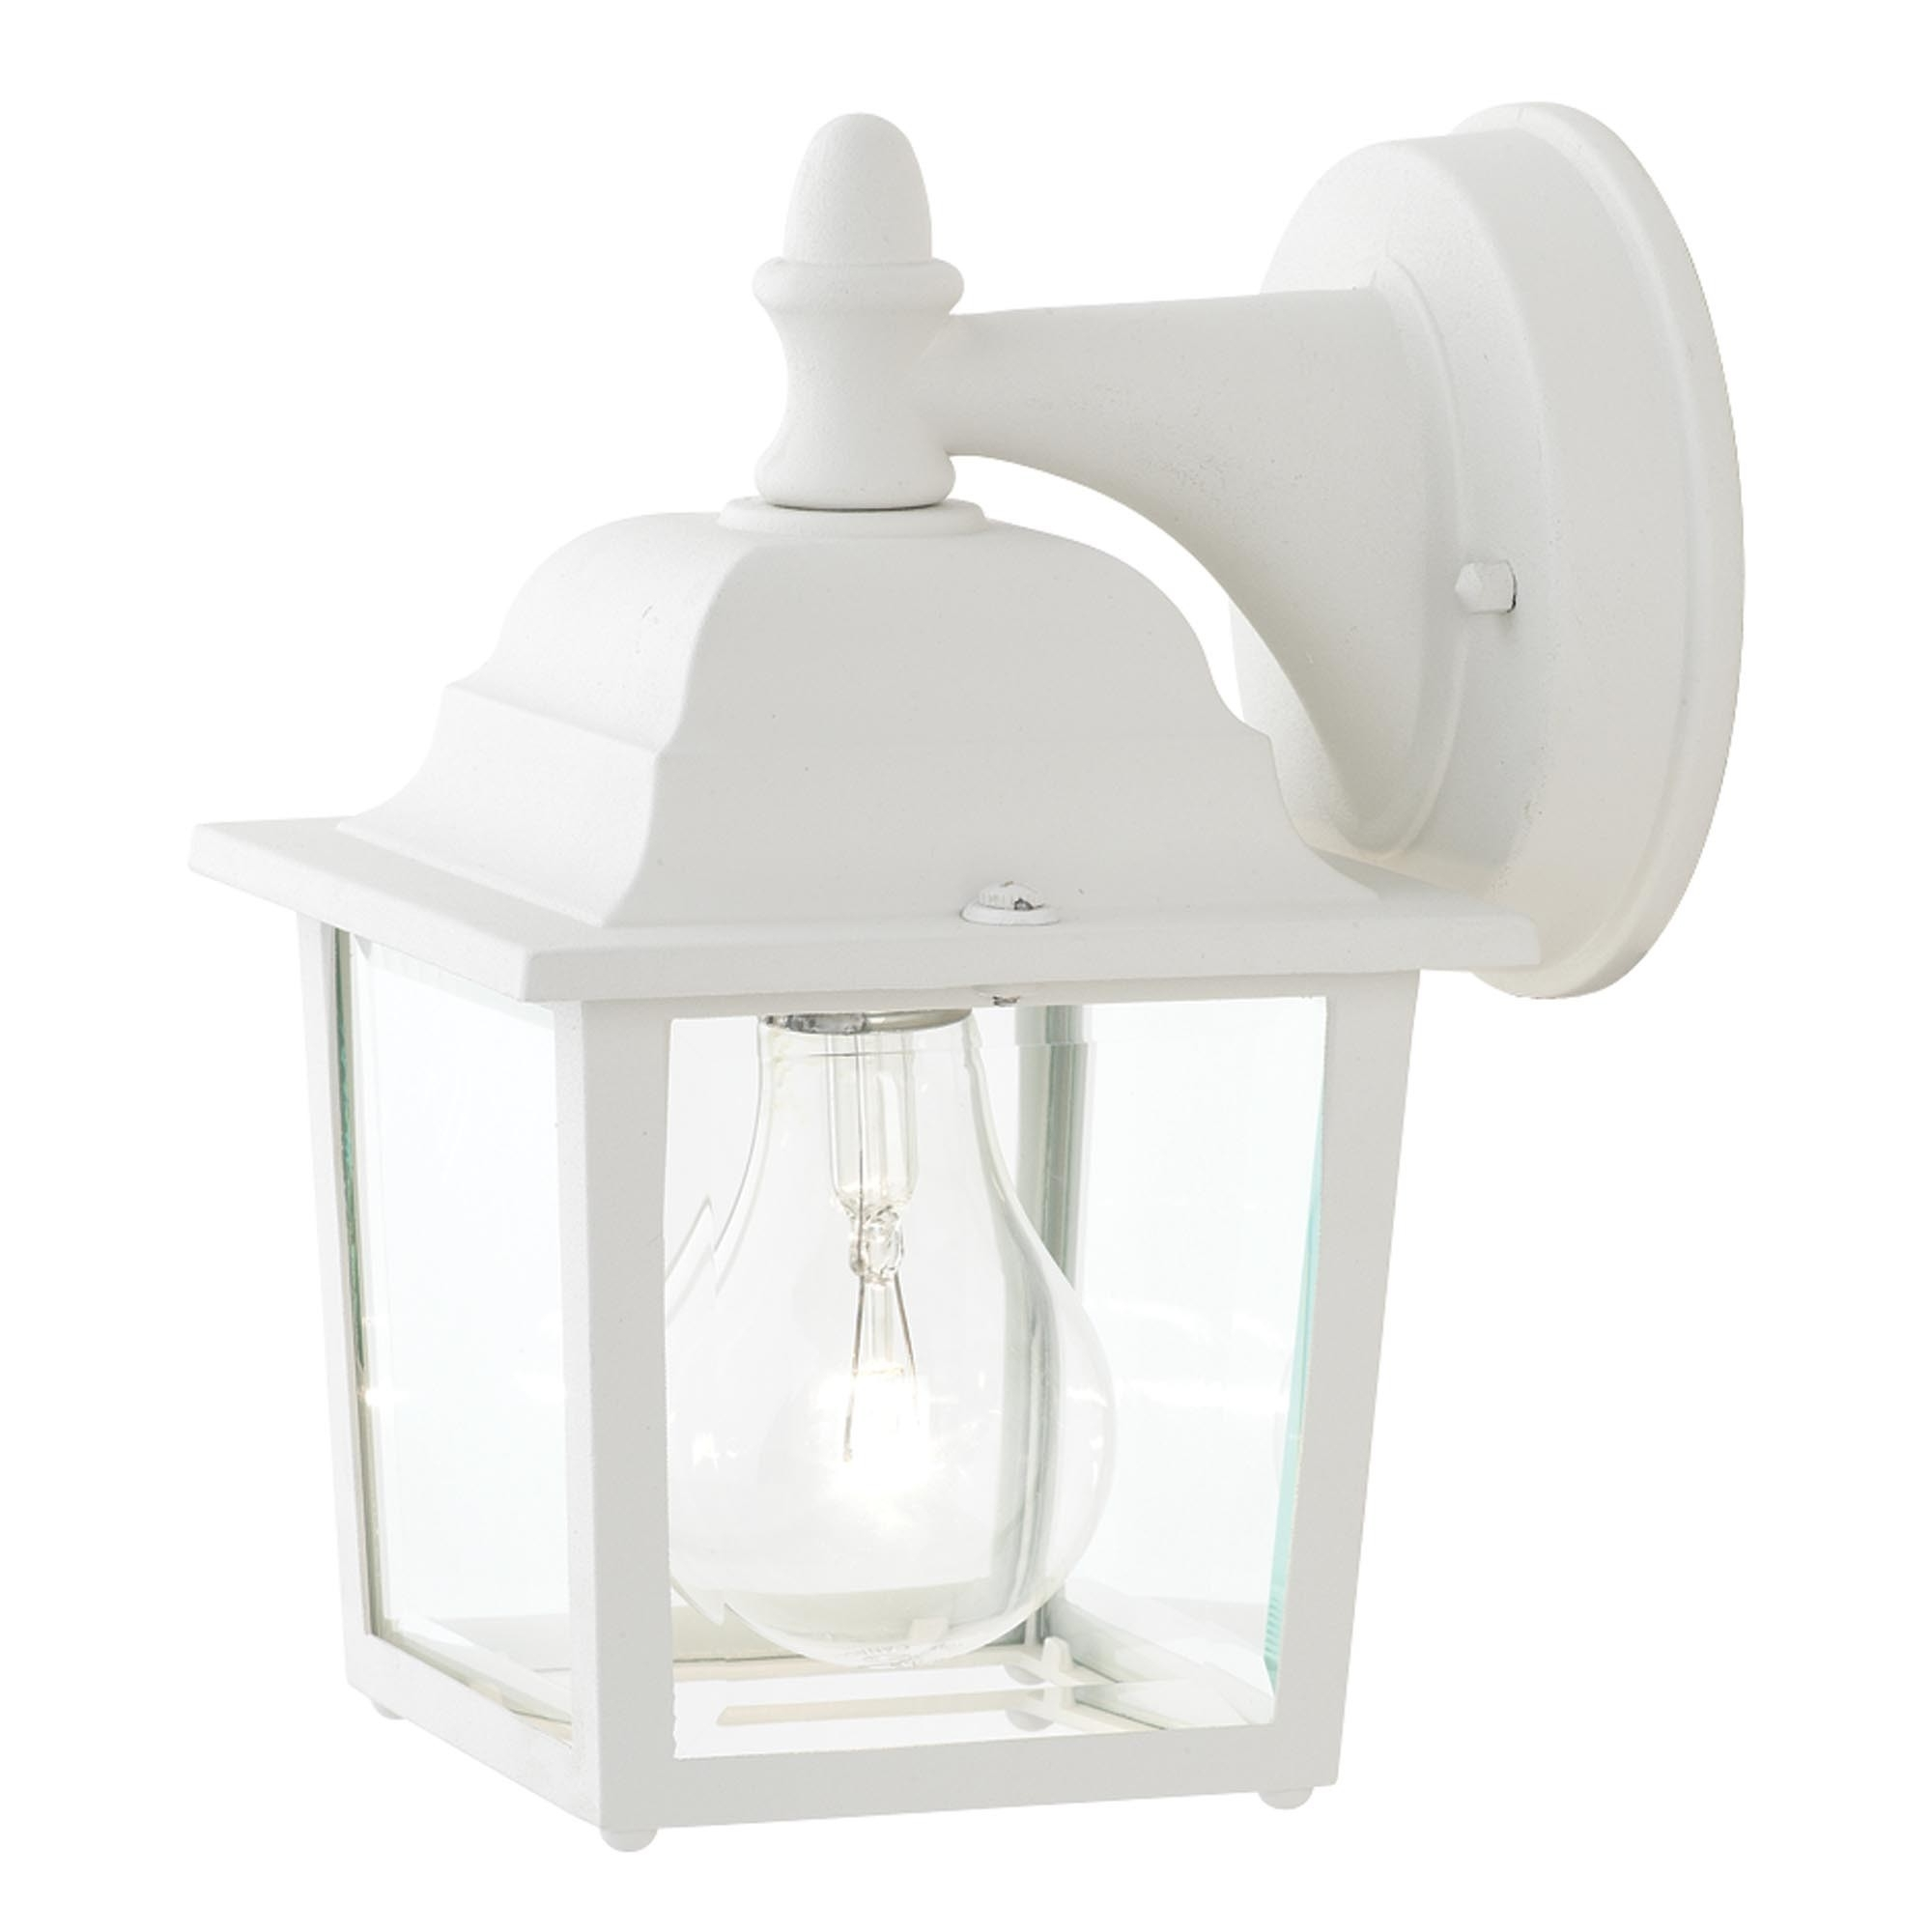 Most Up To Date White Outdoor Wall Lights Intended For Light : New White Outside Wall Lights For Gas With Mount Led Light (View 5 of 20)